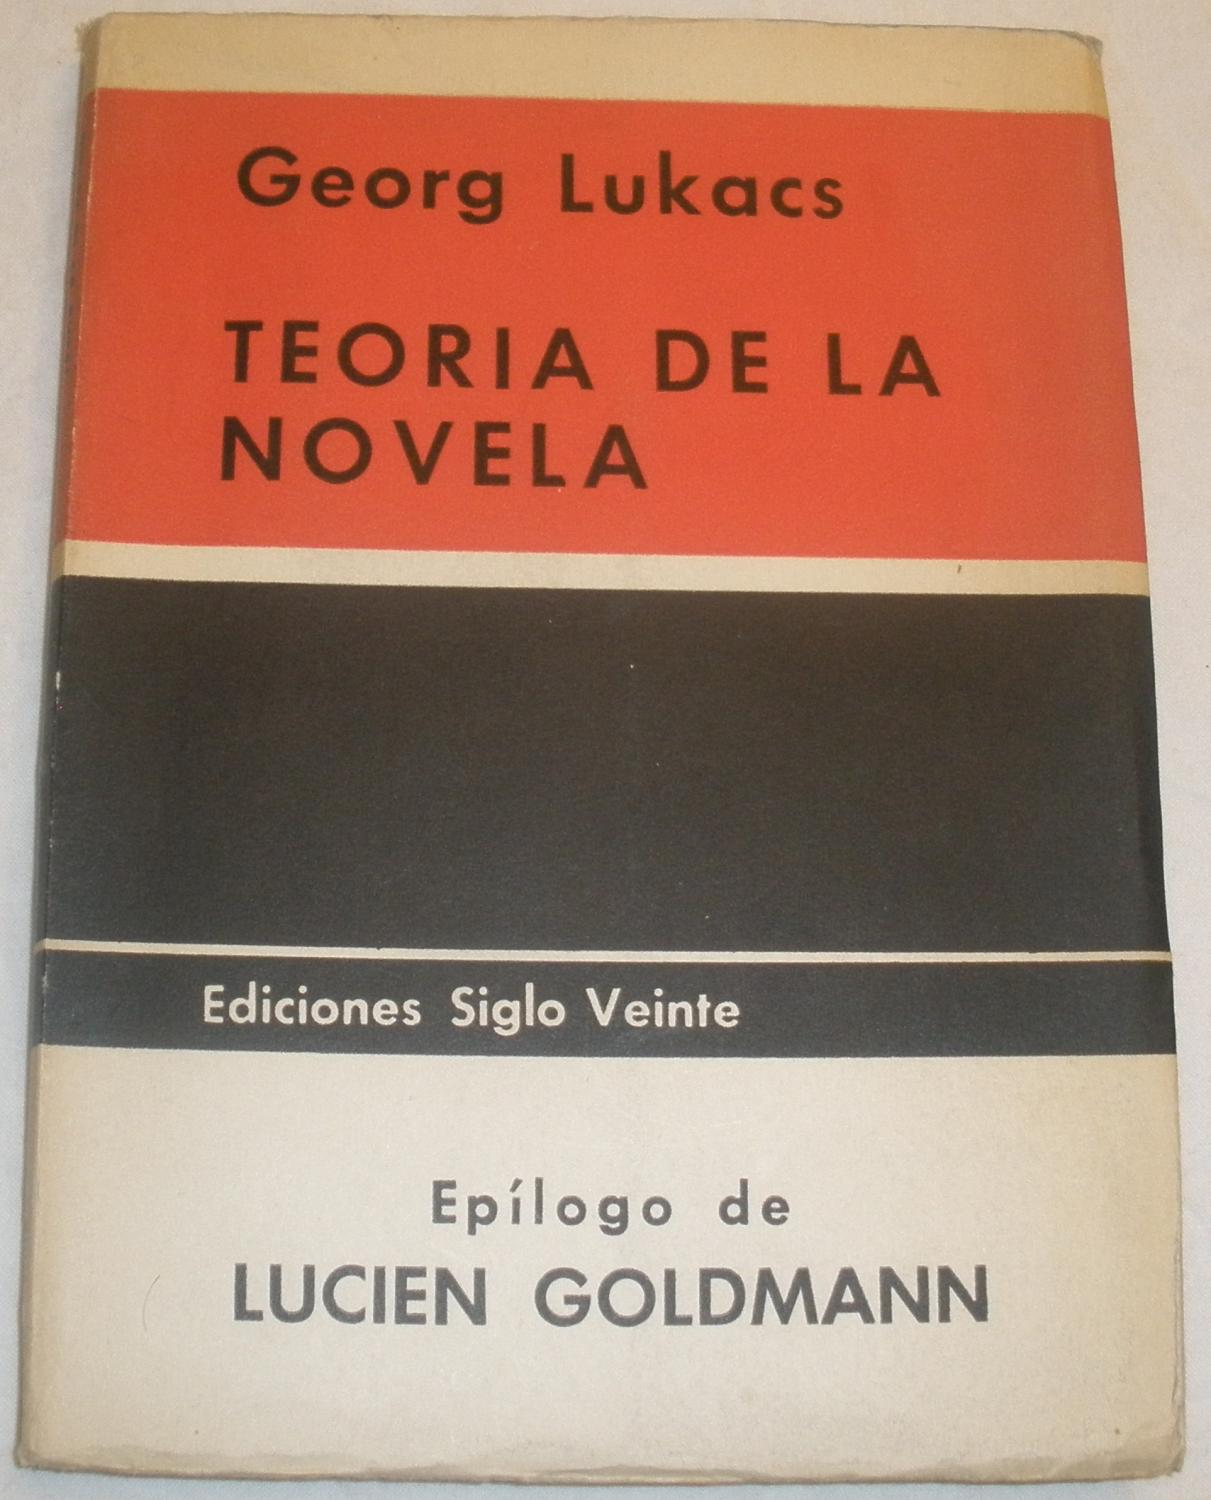 Making And Unmaking Worlds Genre Fiction And Theory: TEORIA DE LA NOVELA GEORG LUKACS PDF